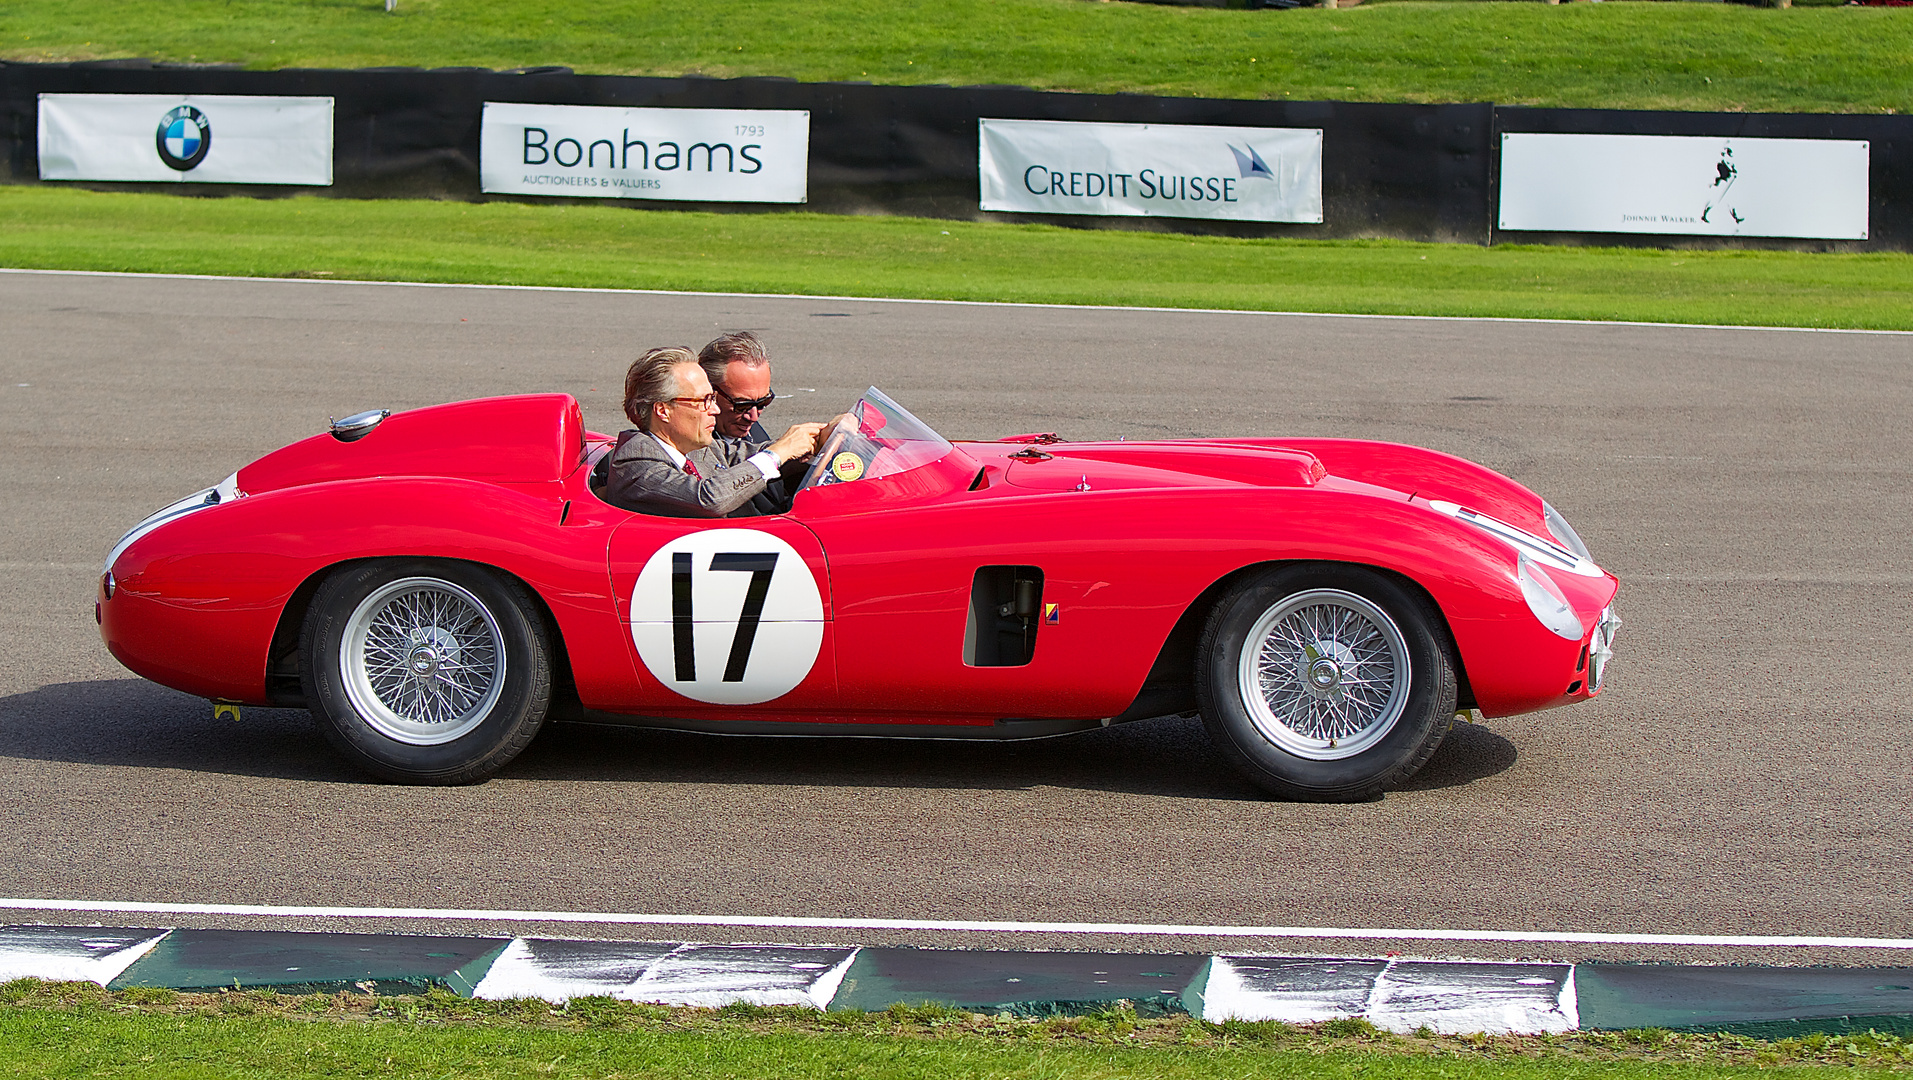 The Earl of March himself at Goodwood Revival